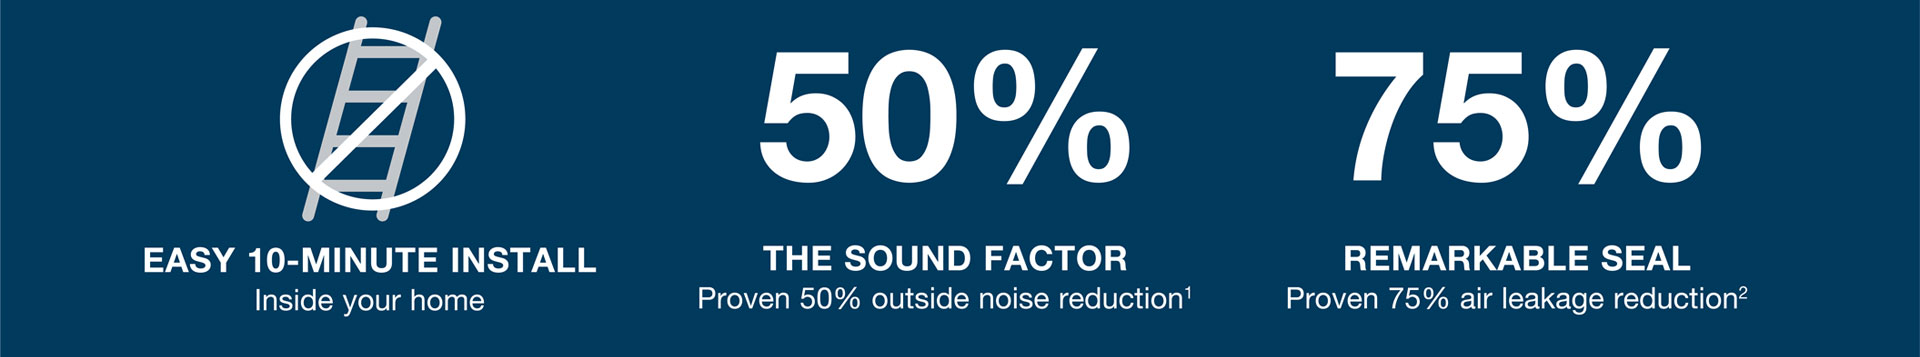 ComfortSeal features 10 min install, 50% sound reduction and reduces drafts by 75%